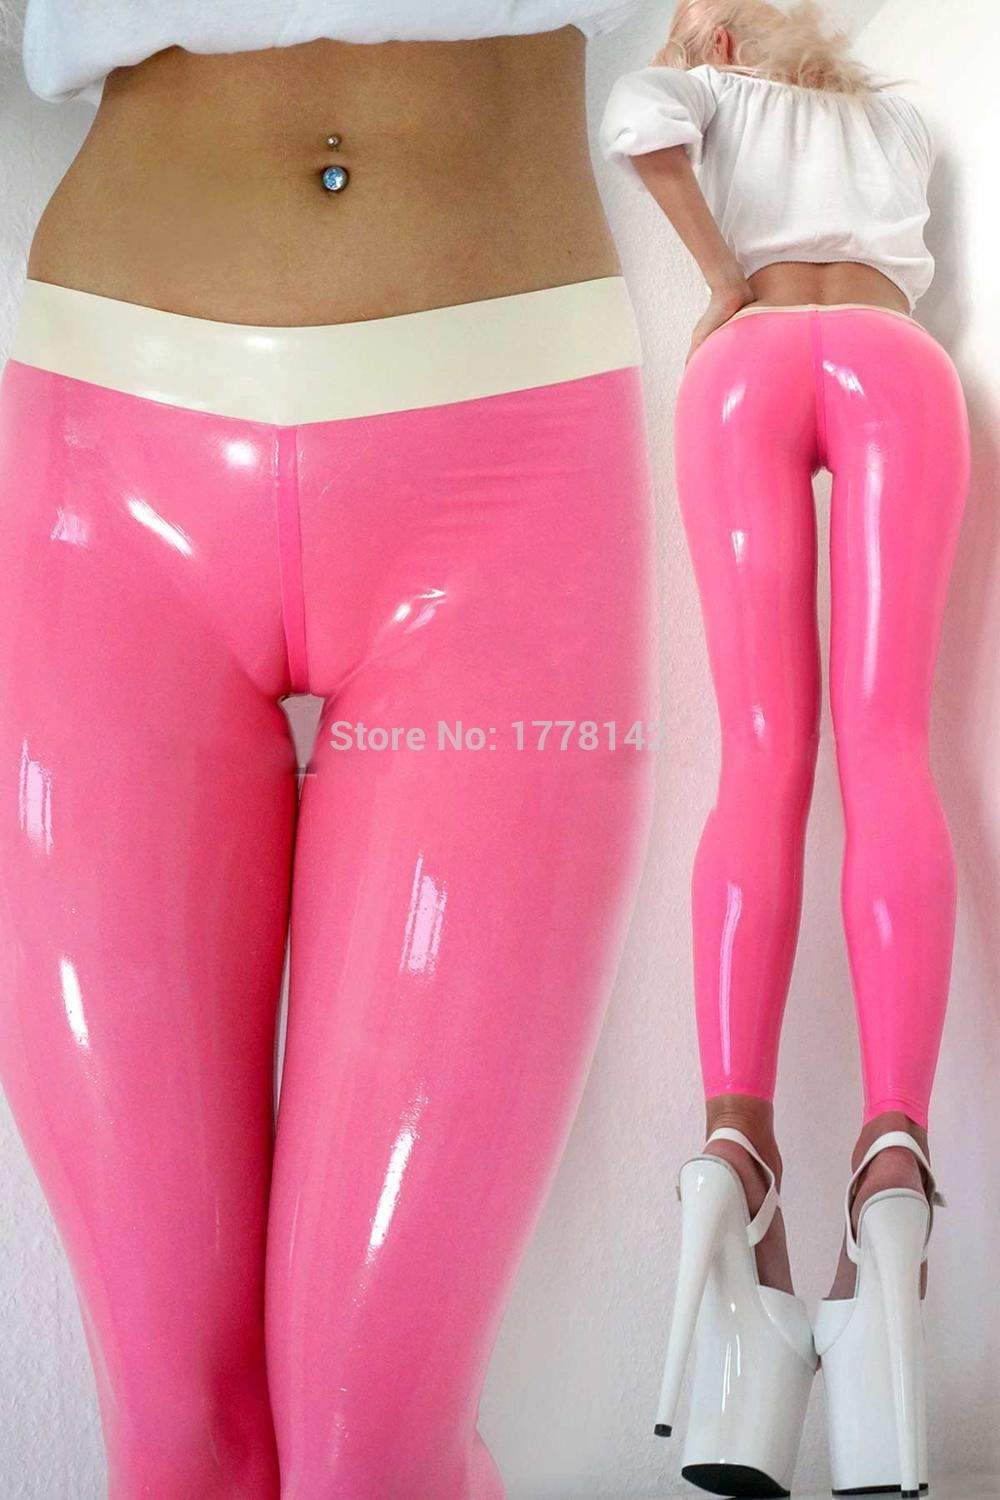 Здесь продается  Handmade Latex Leggings Gummi 0.4mm Women Sex Pink Latex Leggings with White Trims  Одежда и аксессуары